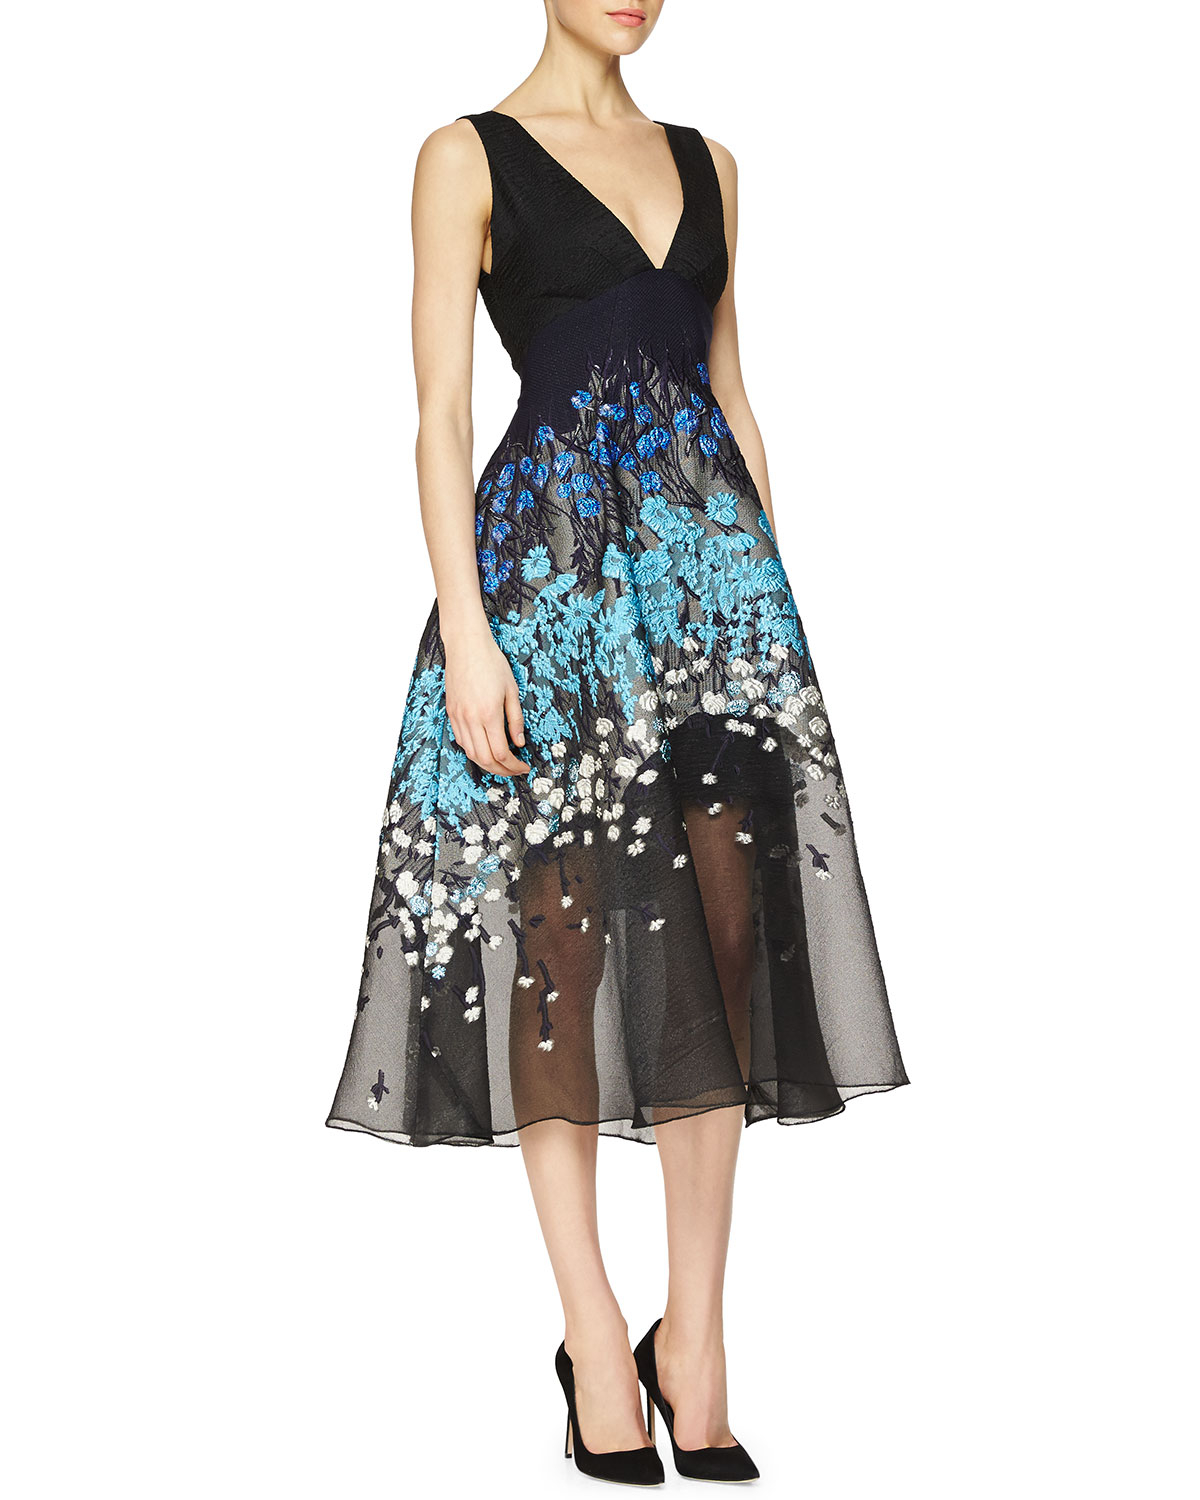 Lela rose floral embroidered fit and flare combo dress in